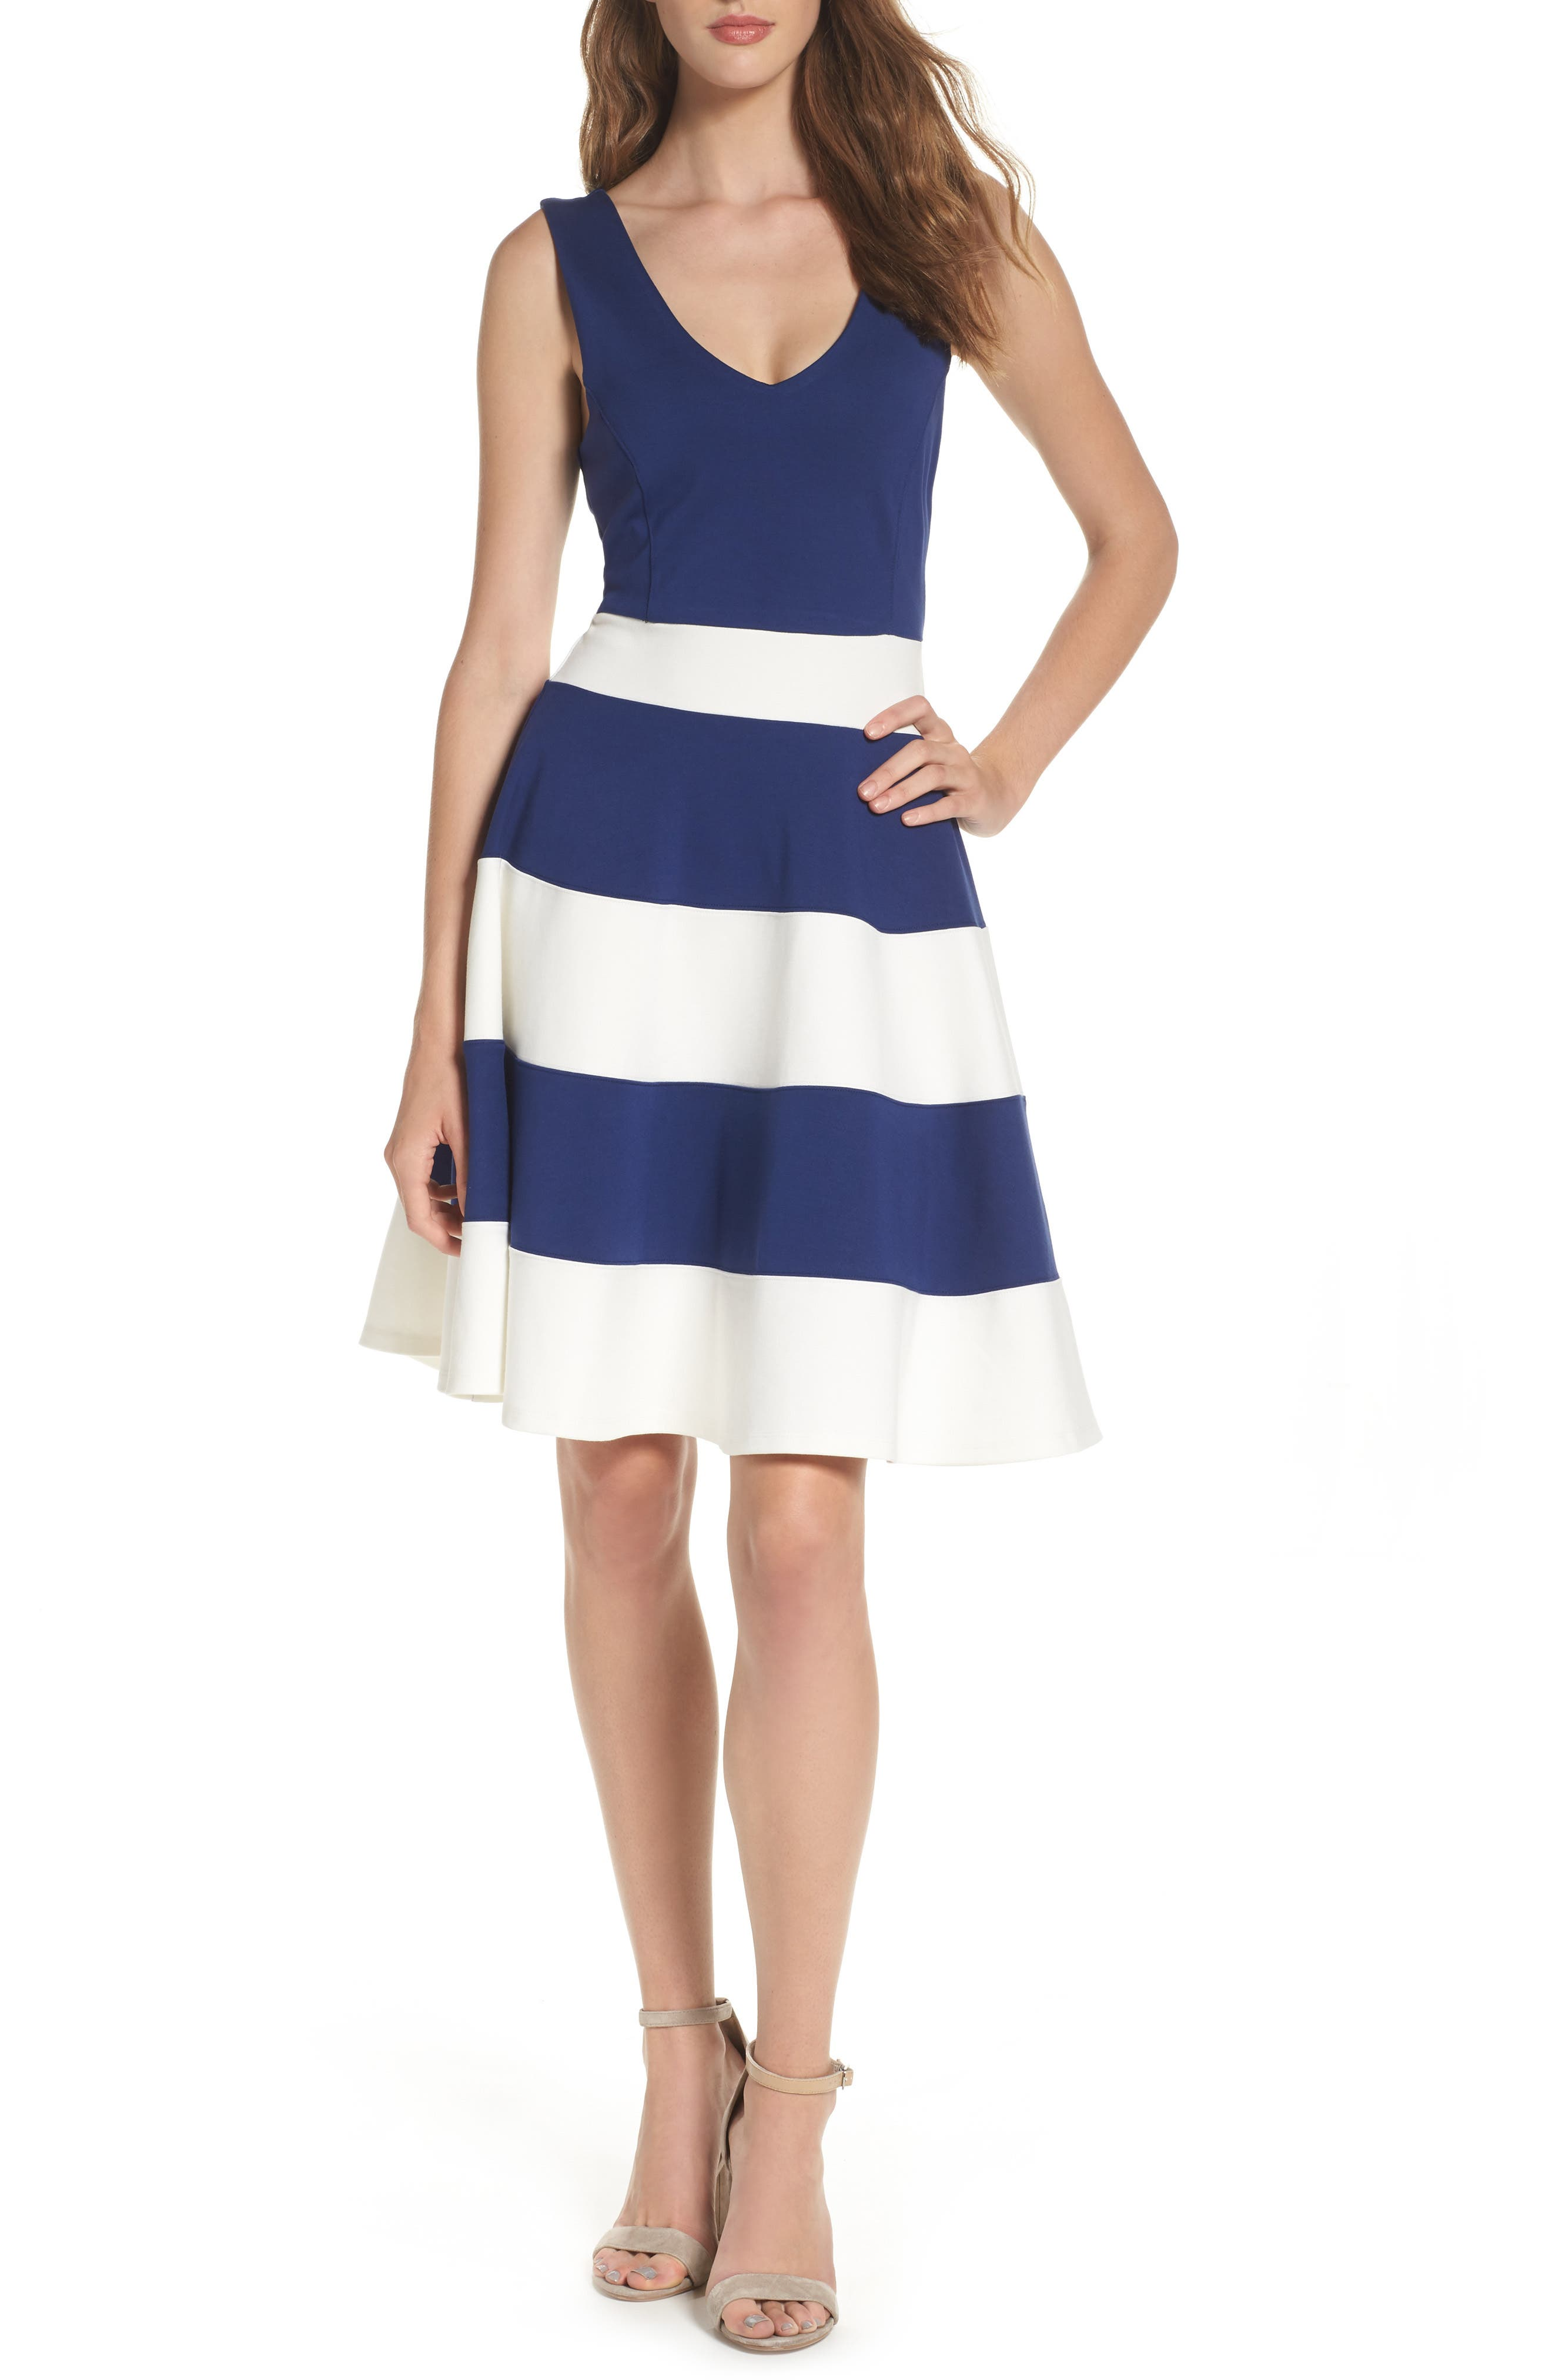 Main Image - Felicity & Coco Joice Sleeveless Fit & Flare Dress (Regular & Petite)(Nordstrom Exclusive)